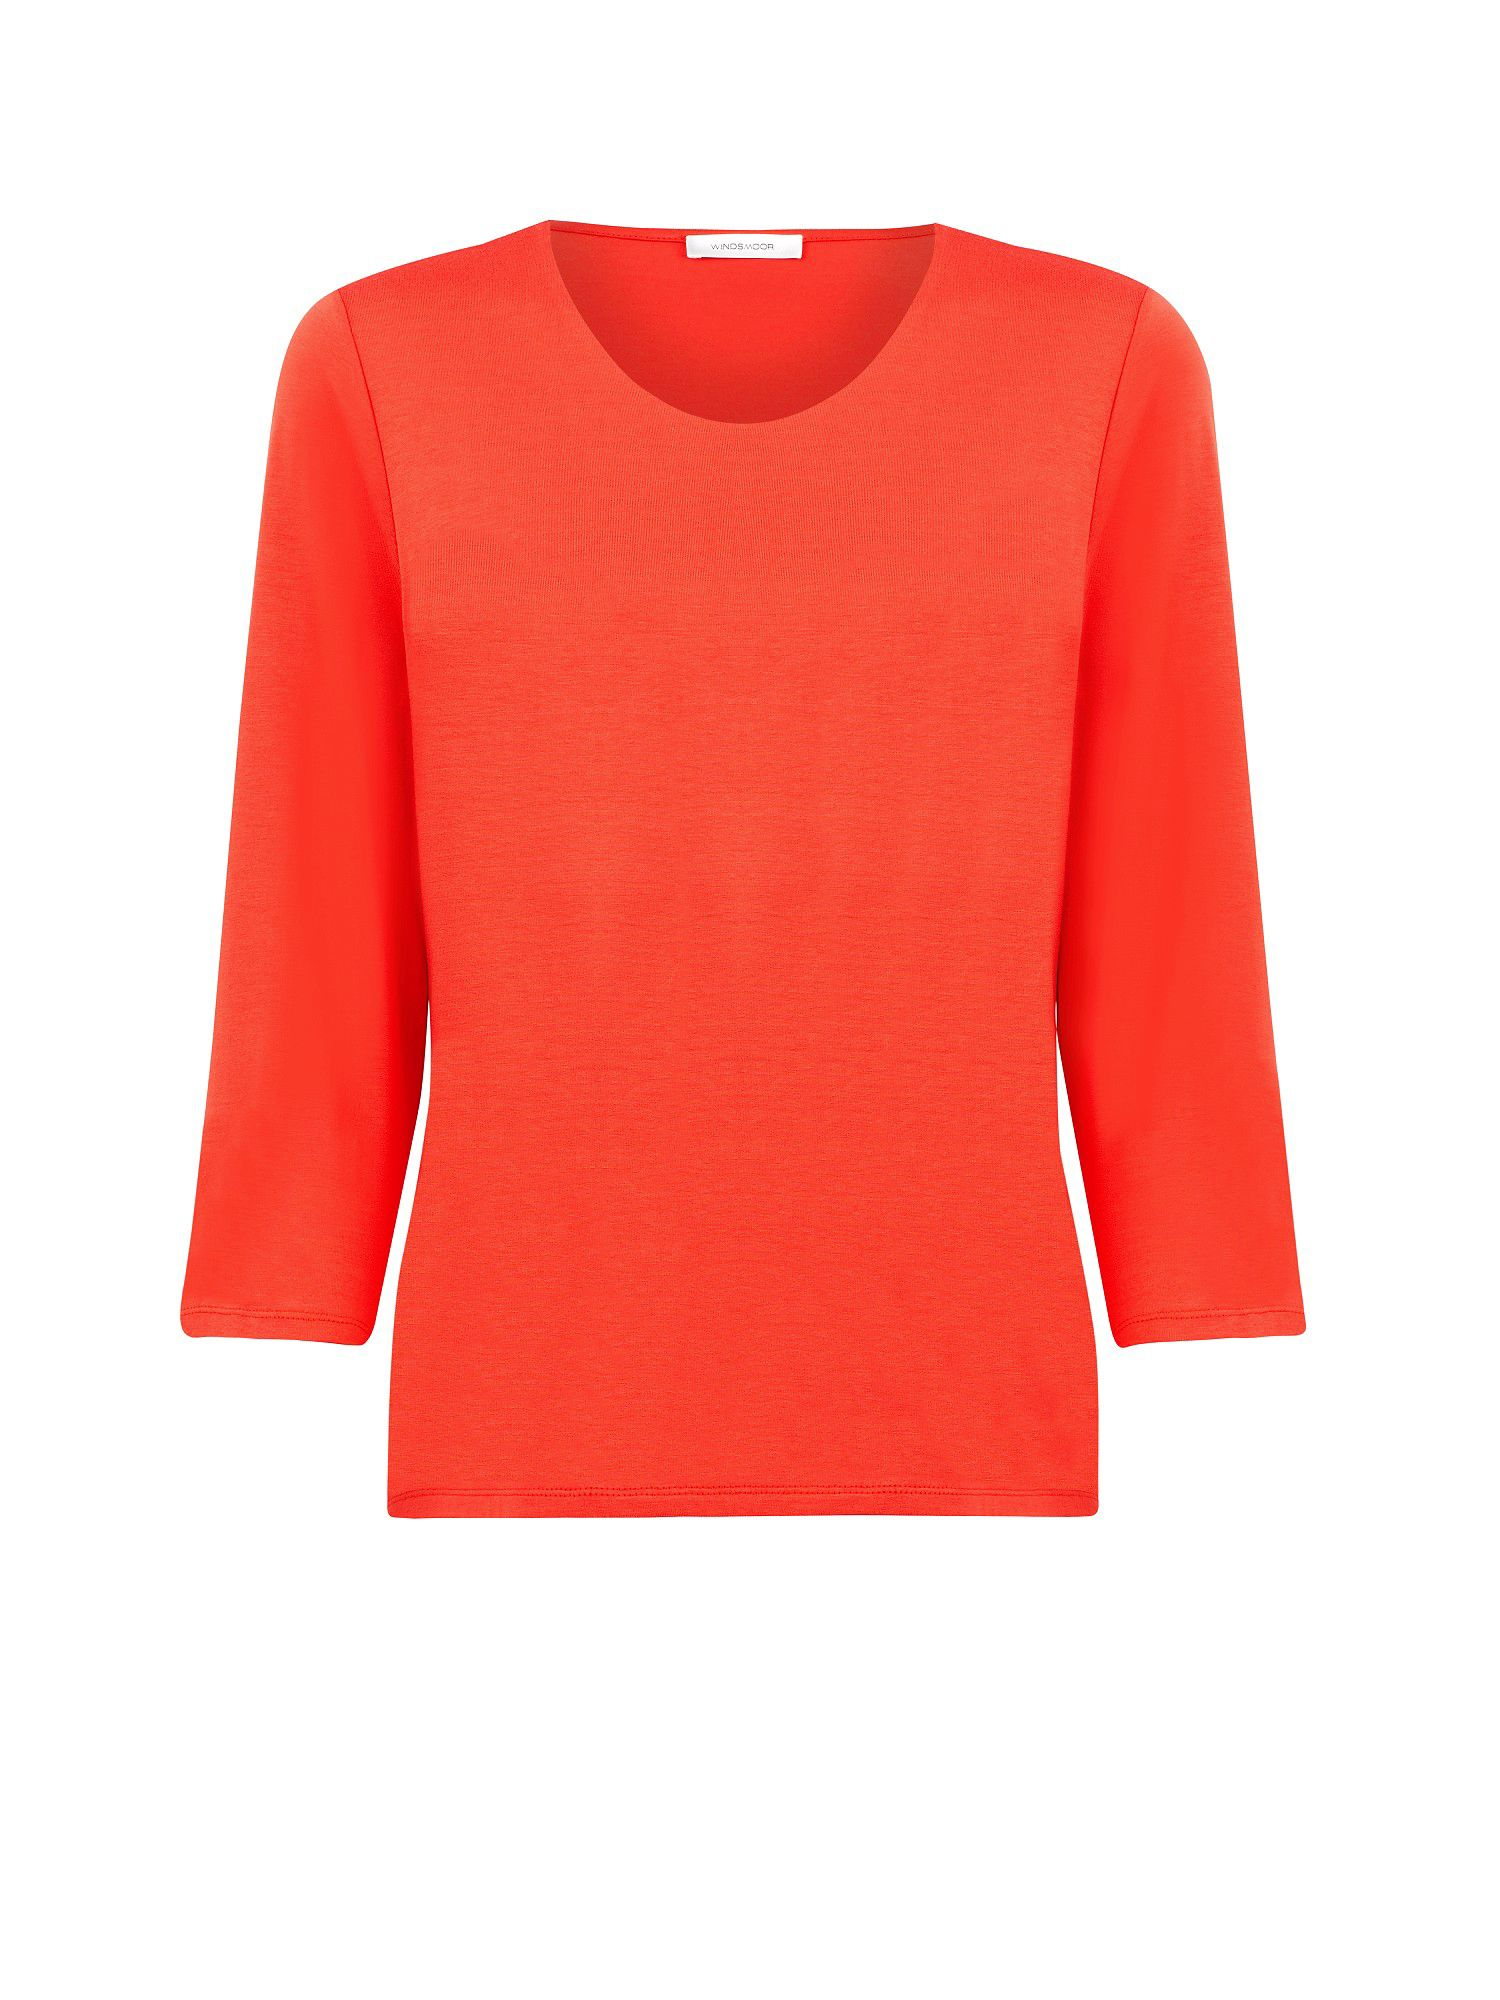 Sunset orange jersey top